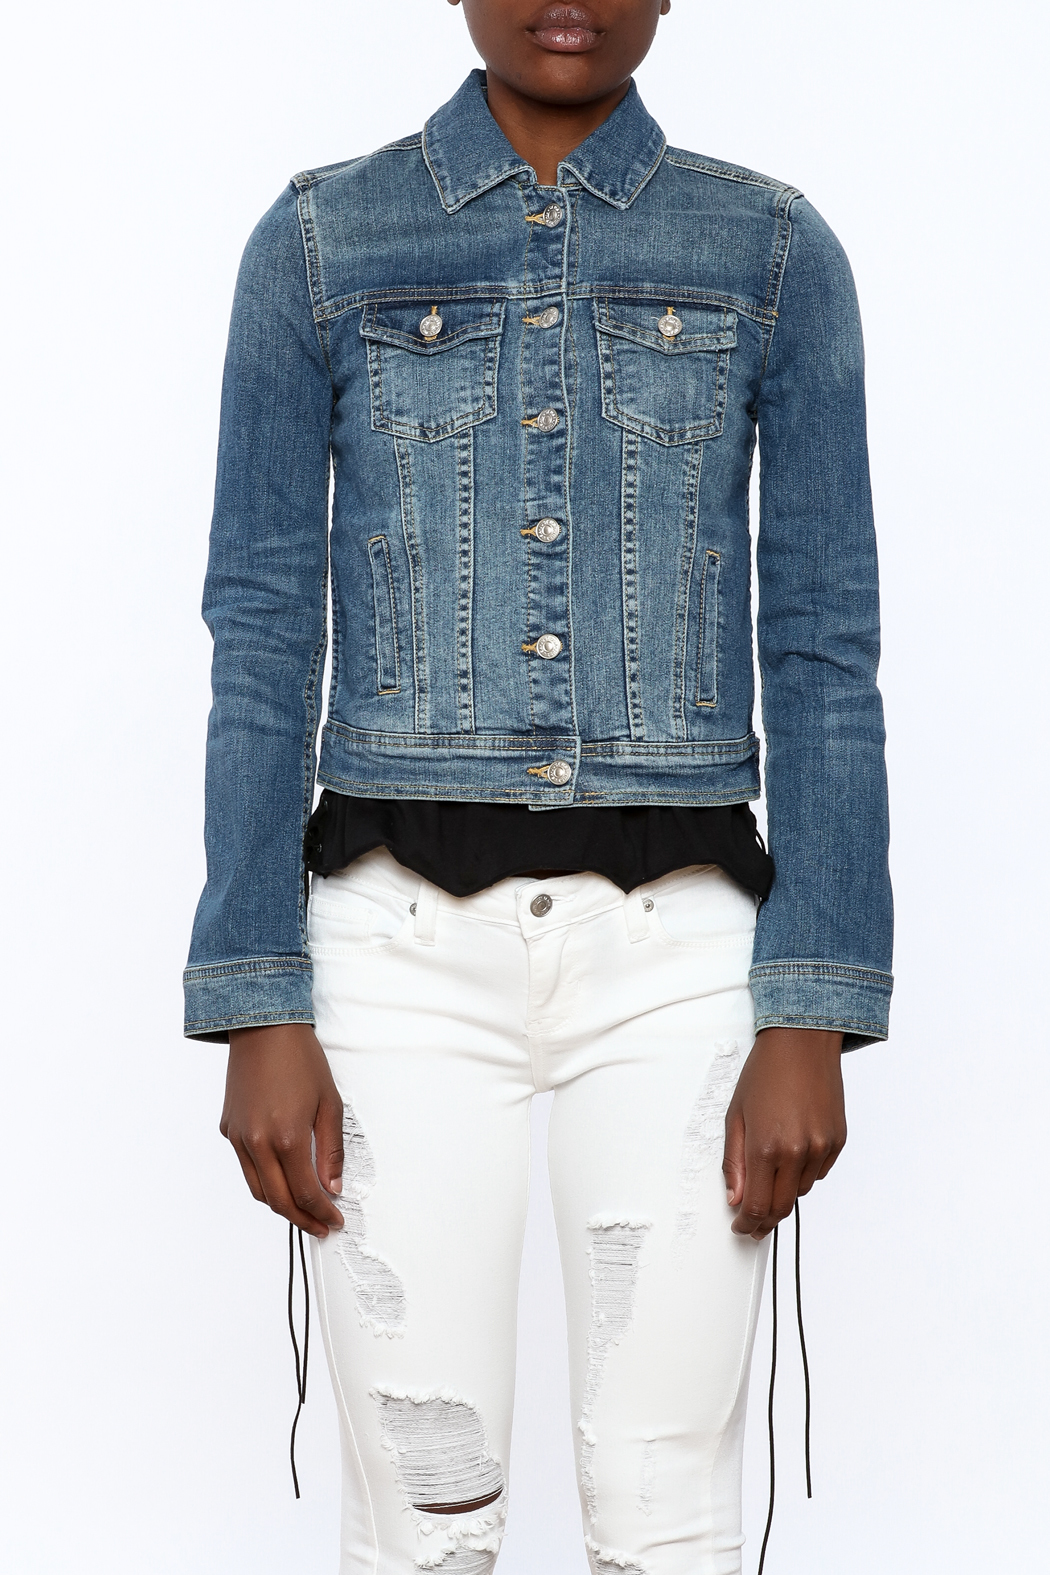 You searched for: usa denim jacket! Etsy is the home to thousands of handmade, vintage, and one-of-a-kind products and gifts related to your search. No matter what you're looking for or where you are in the world, our global marketplace of sellers can help you find unique and affordable options.